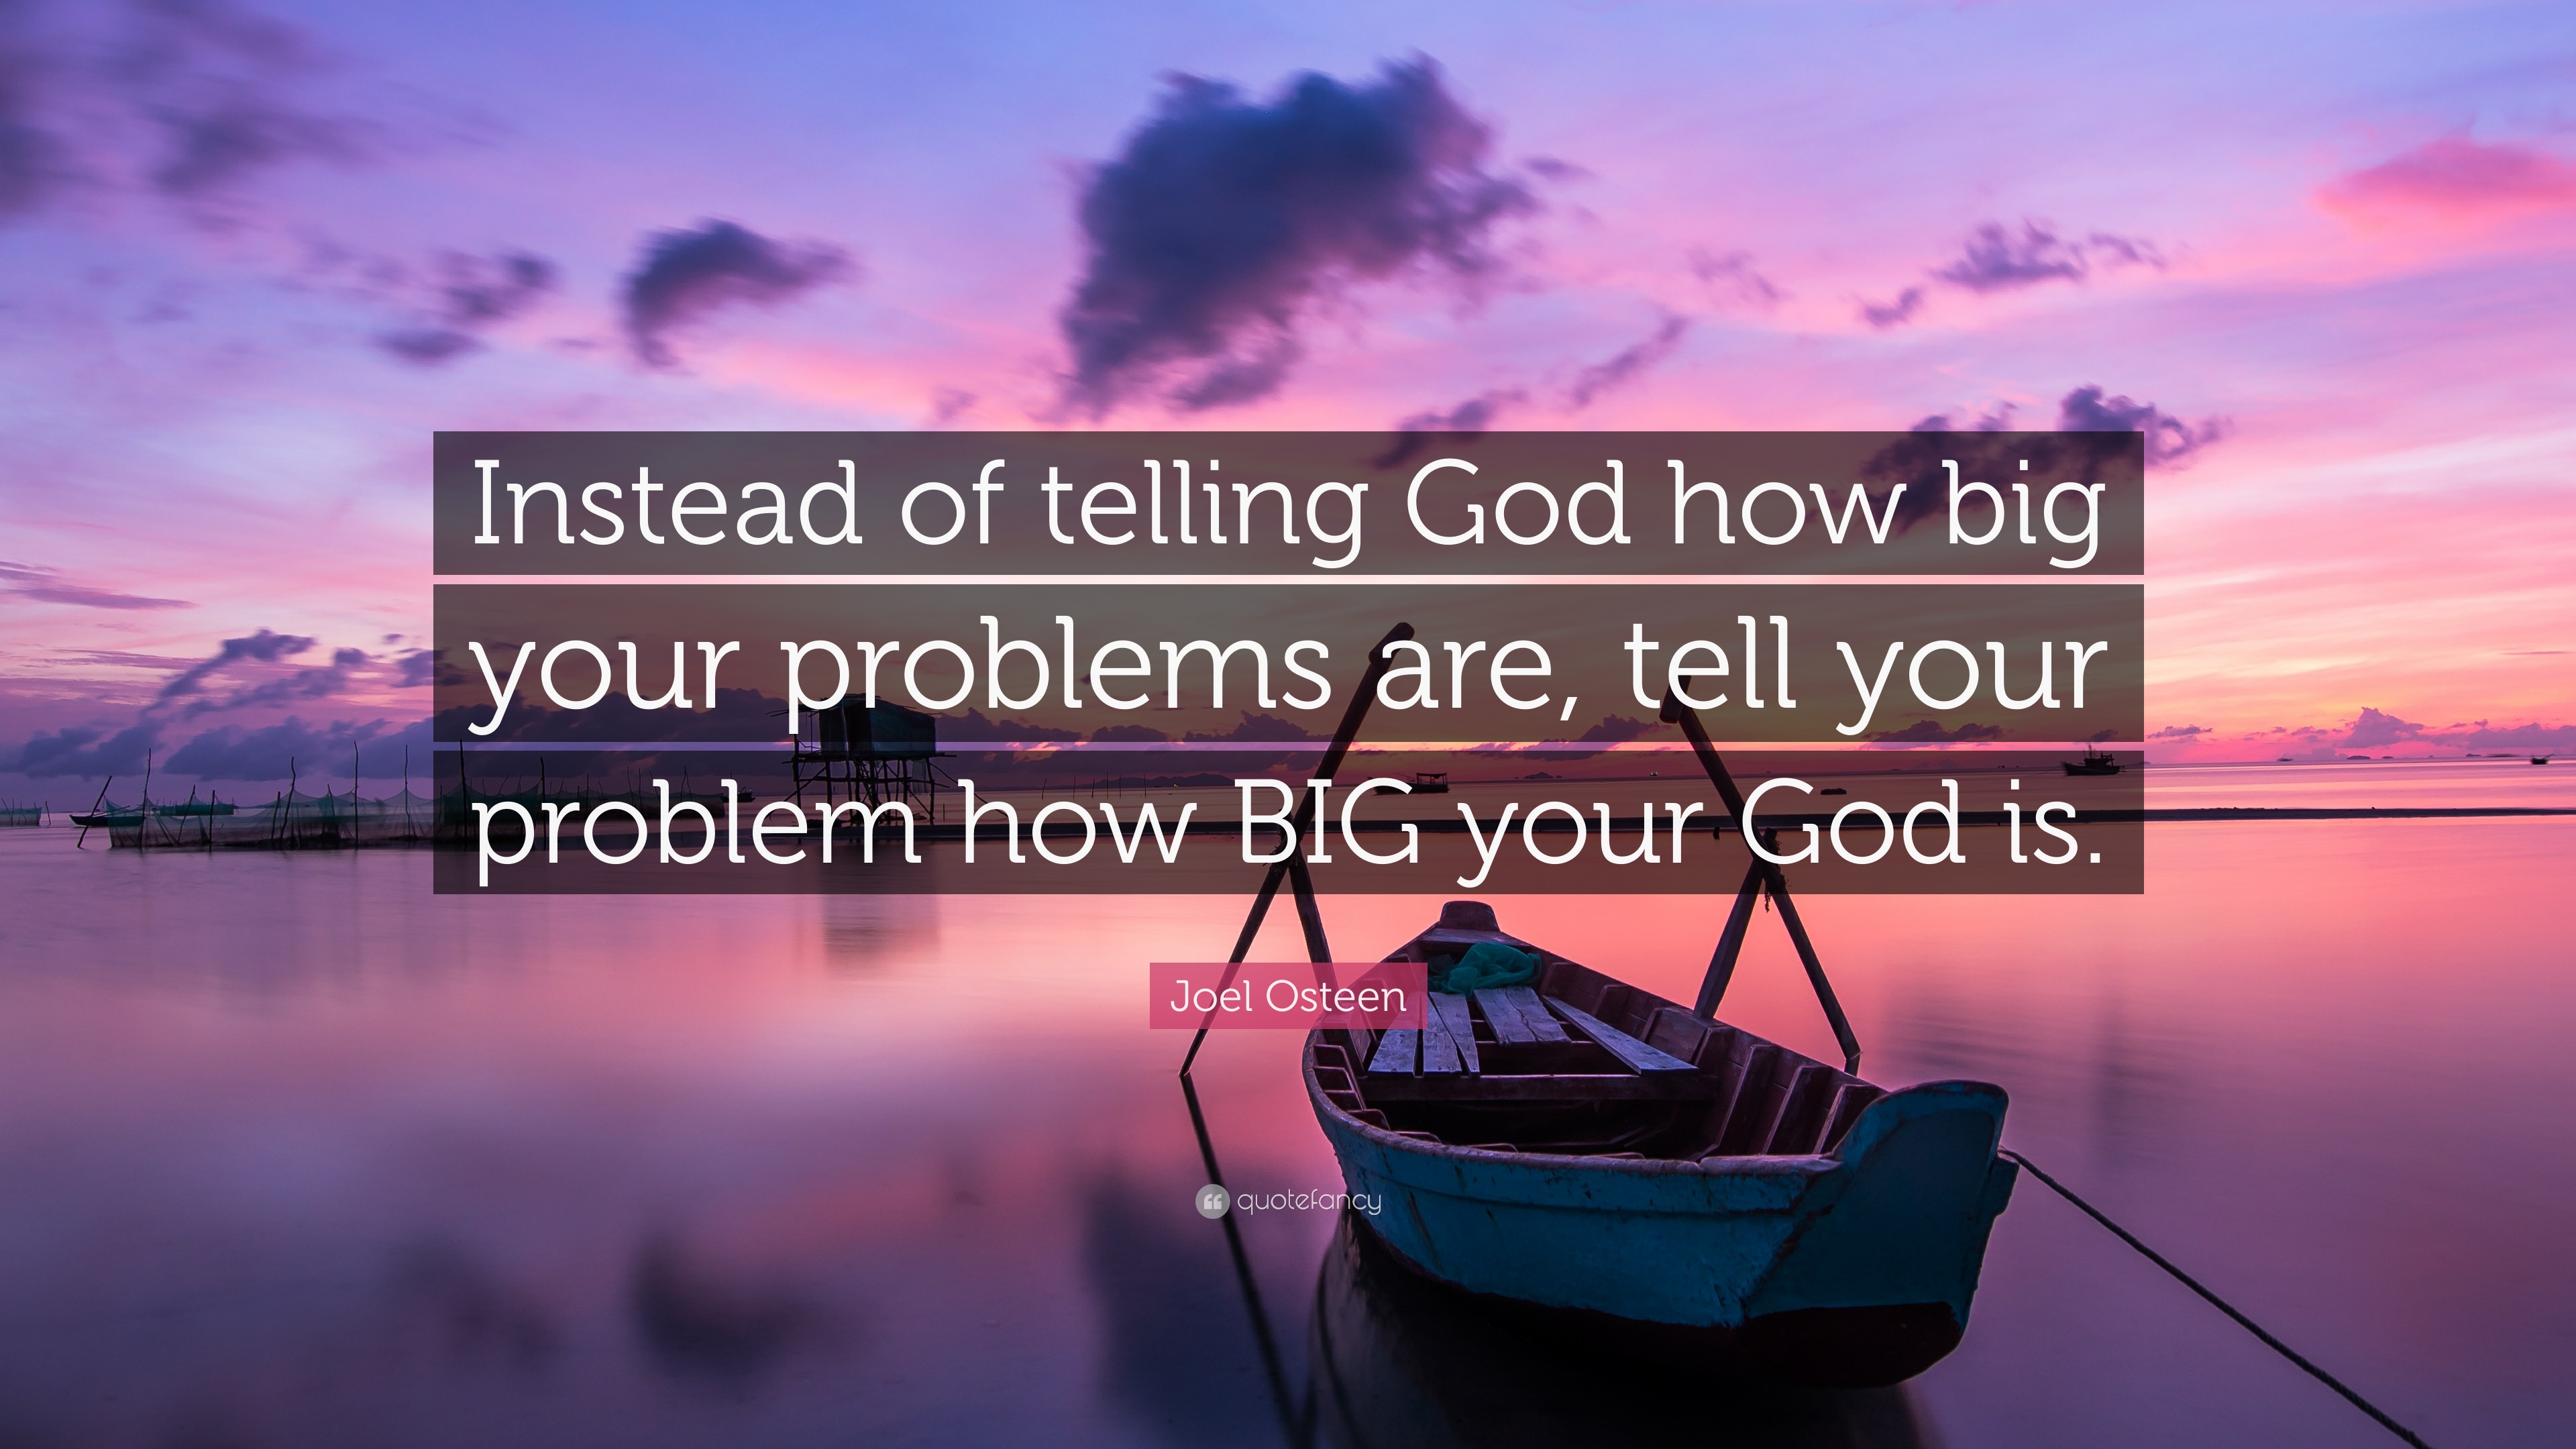 Why is talking about your problems god